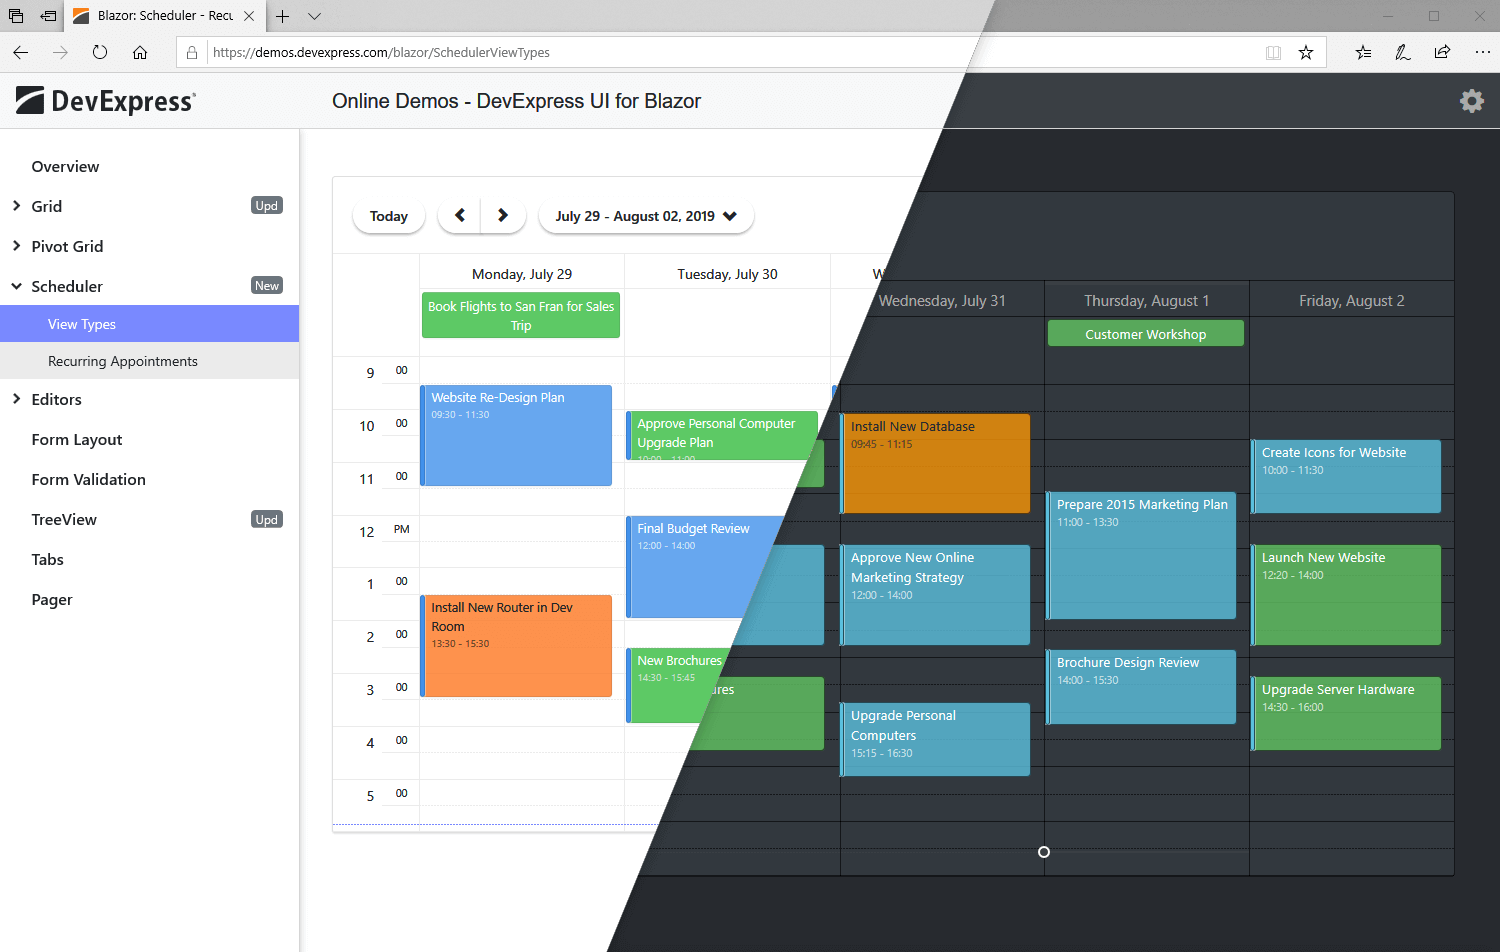 Blazor Scheduler UI Component - Themes, DevExpress